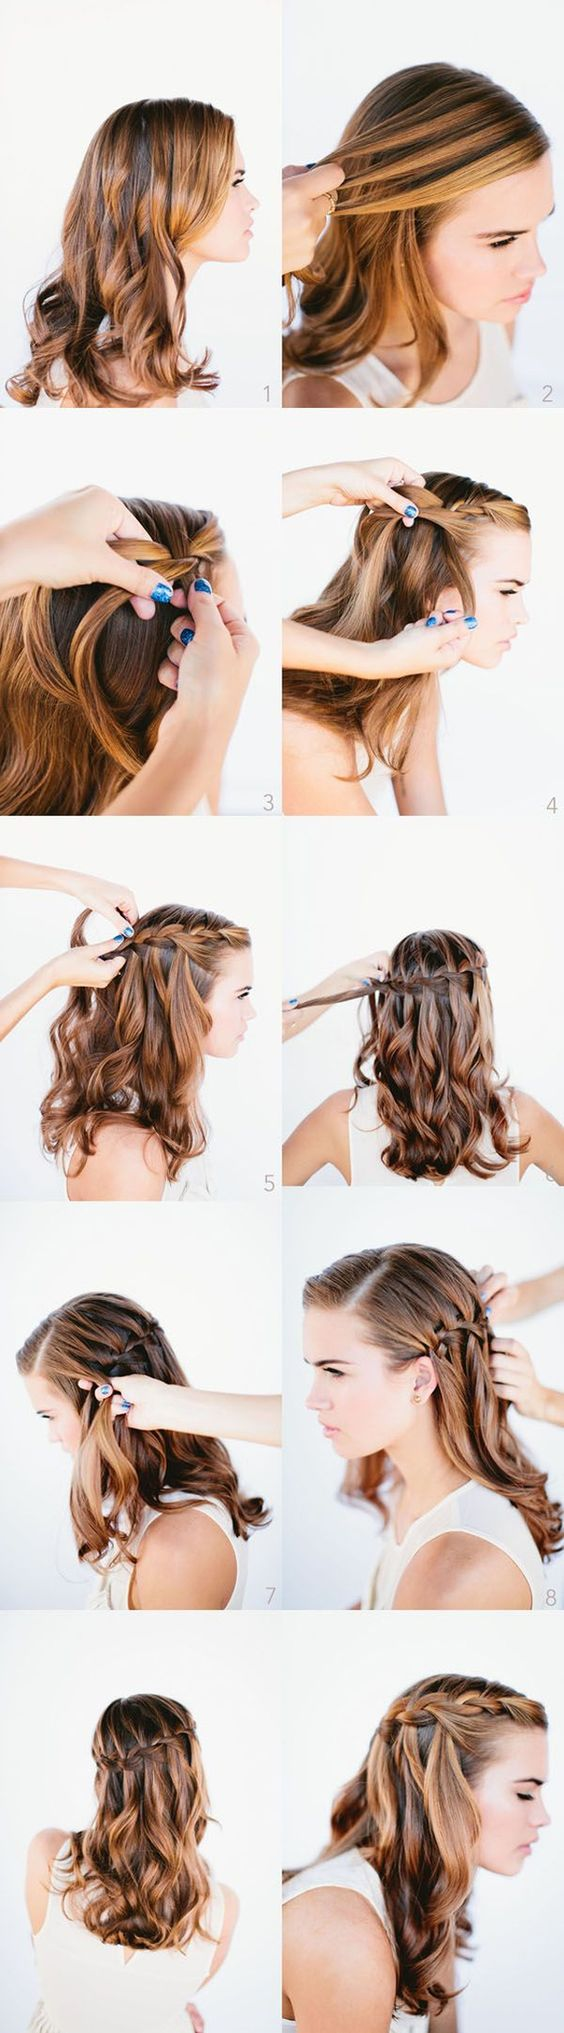 Tuto Coiffure Coiffures And Glamour On Pinterest